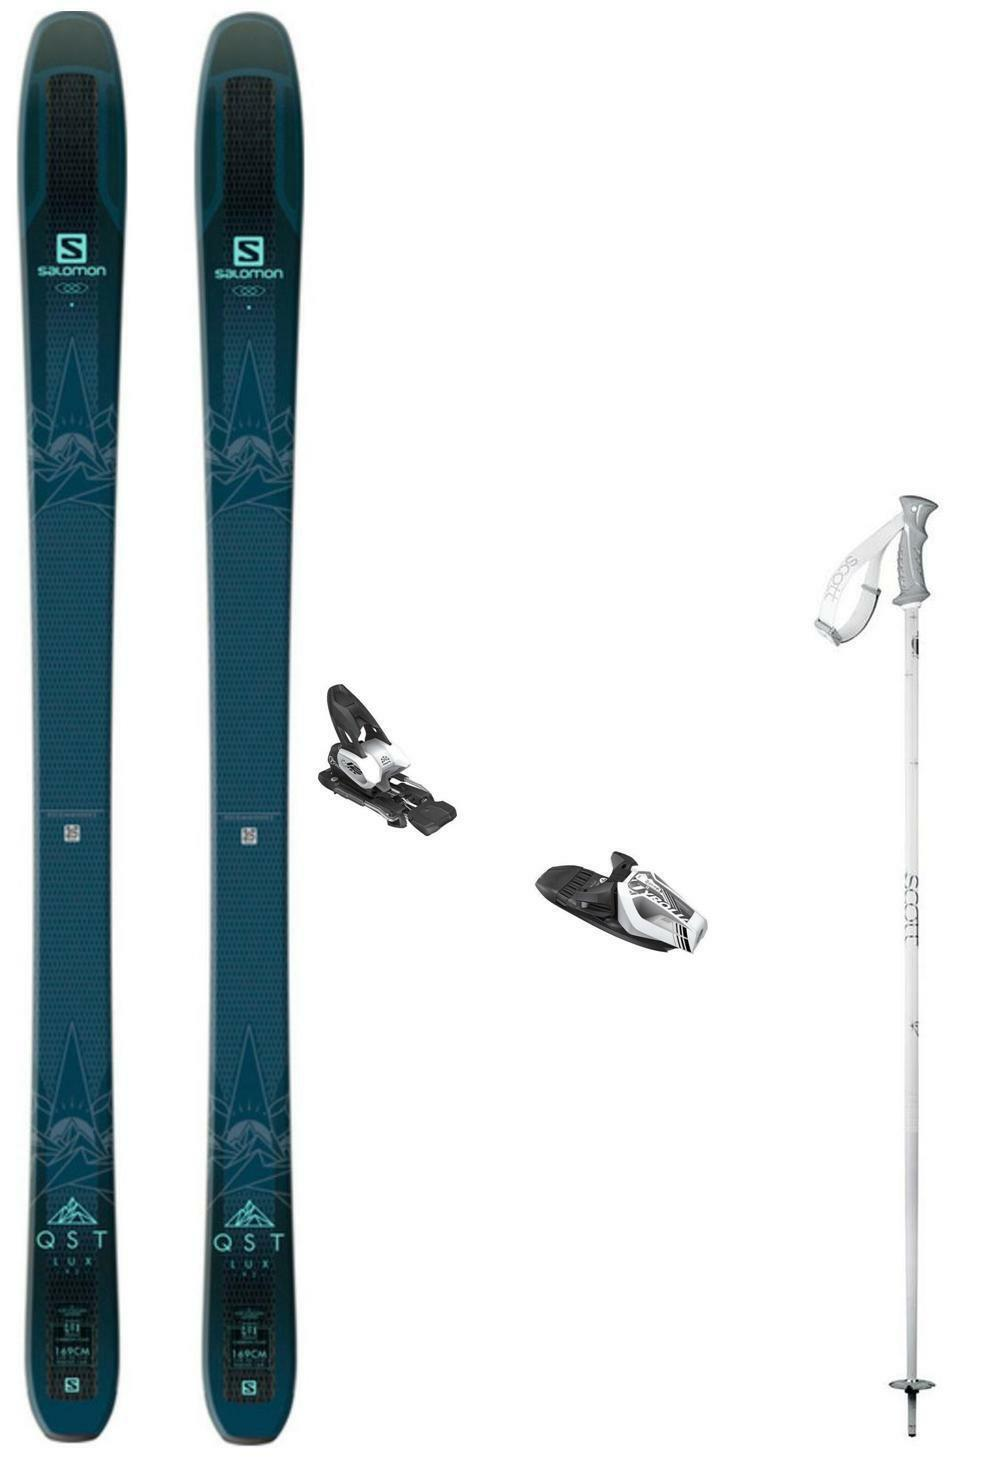 NEW Salomon QST 92 Lux ladies snow skis 169 cm w-bind (+ POLES at BuyItNow) 2019